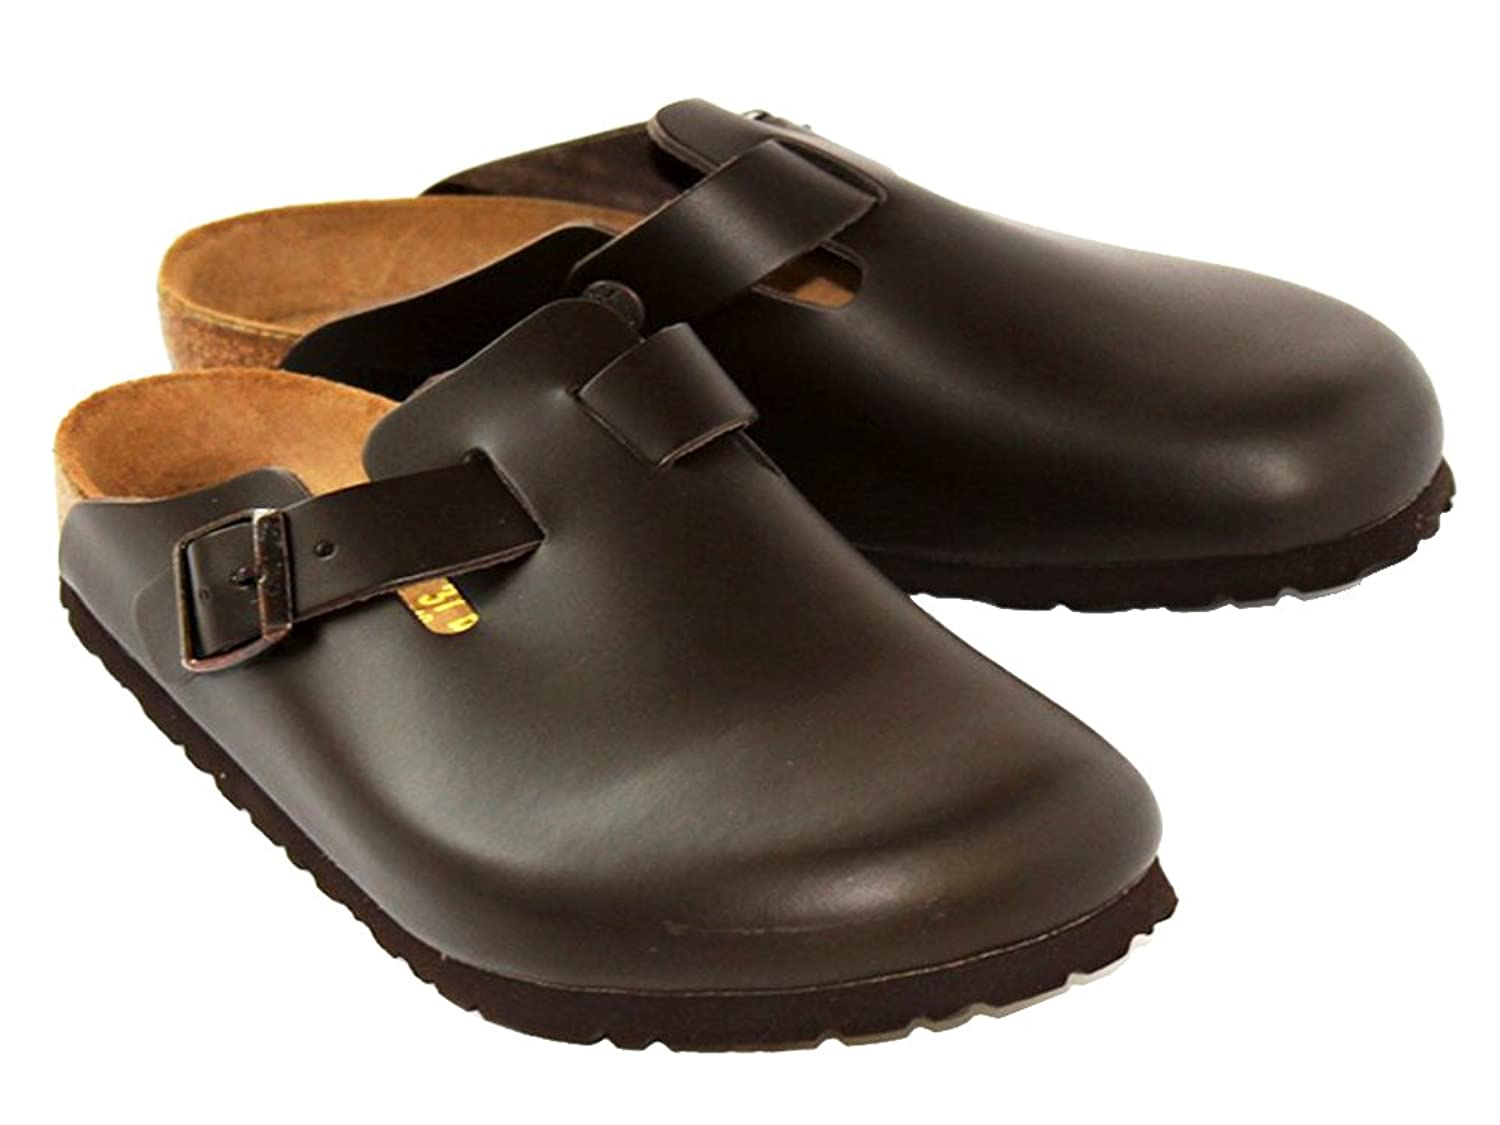 Birkenstock Boston Unisex Clog in Natural Dark Brown Classic Oiled Leather